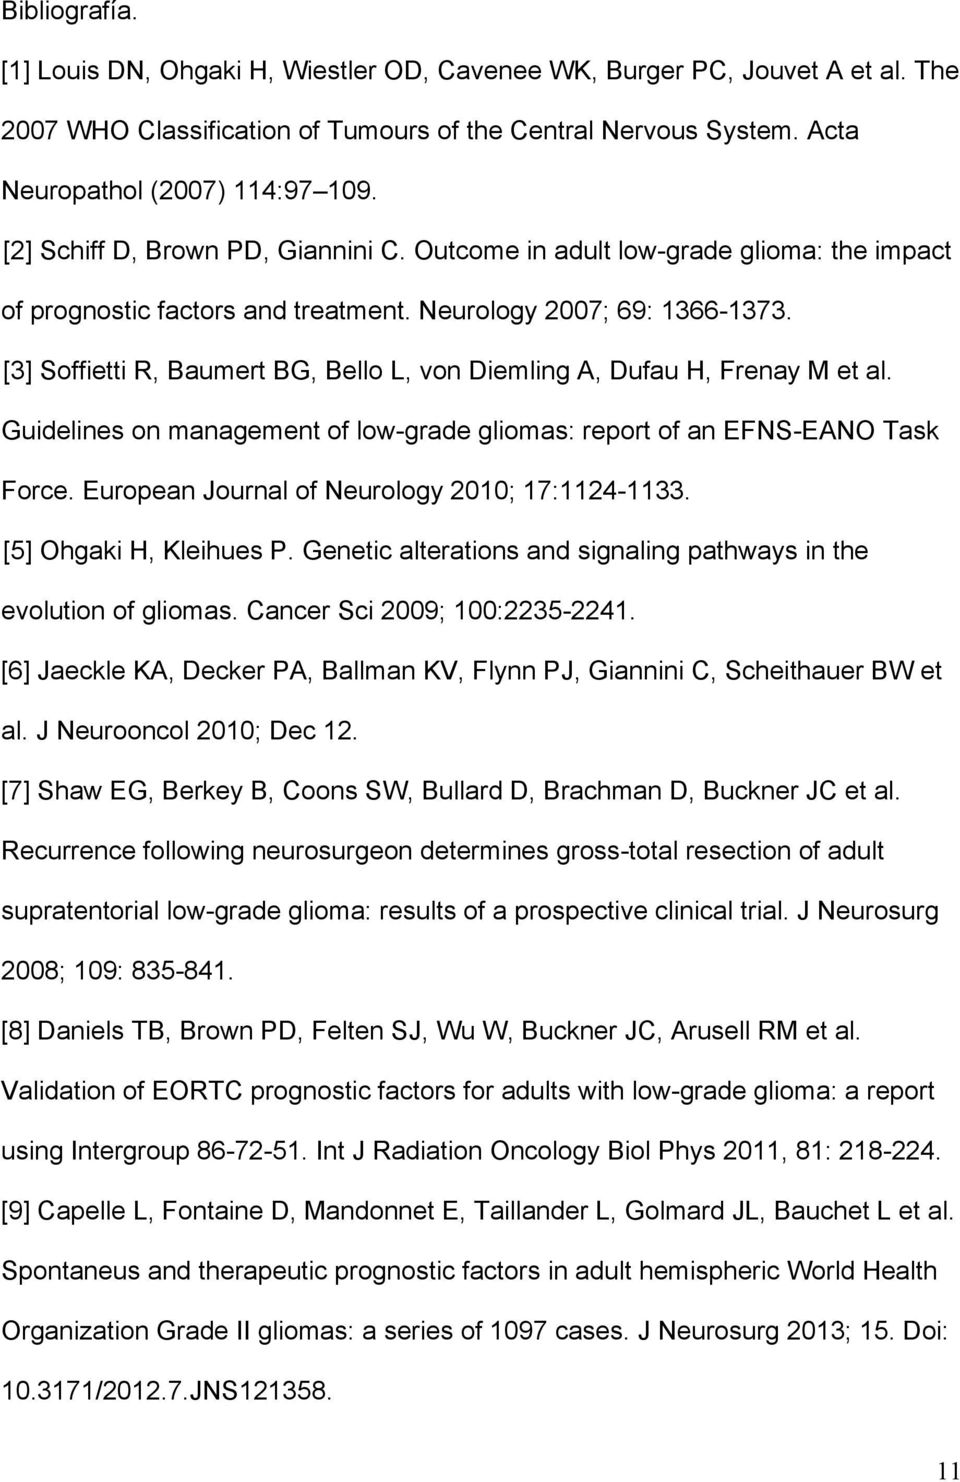 [3] Soffietti R, Baumert BG, Bello L, von Diemling A, Dufau H, Frenay M et al. Guidelines on management of low-grade gliomas: report of an EFNS-EANO Task Force.